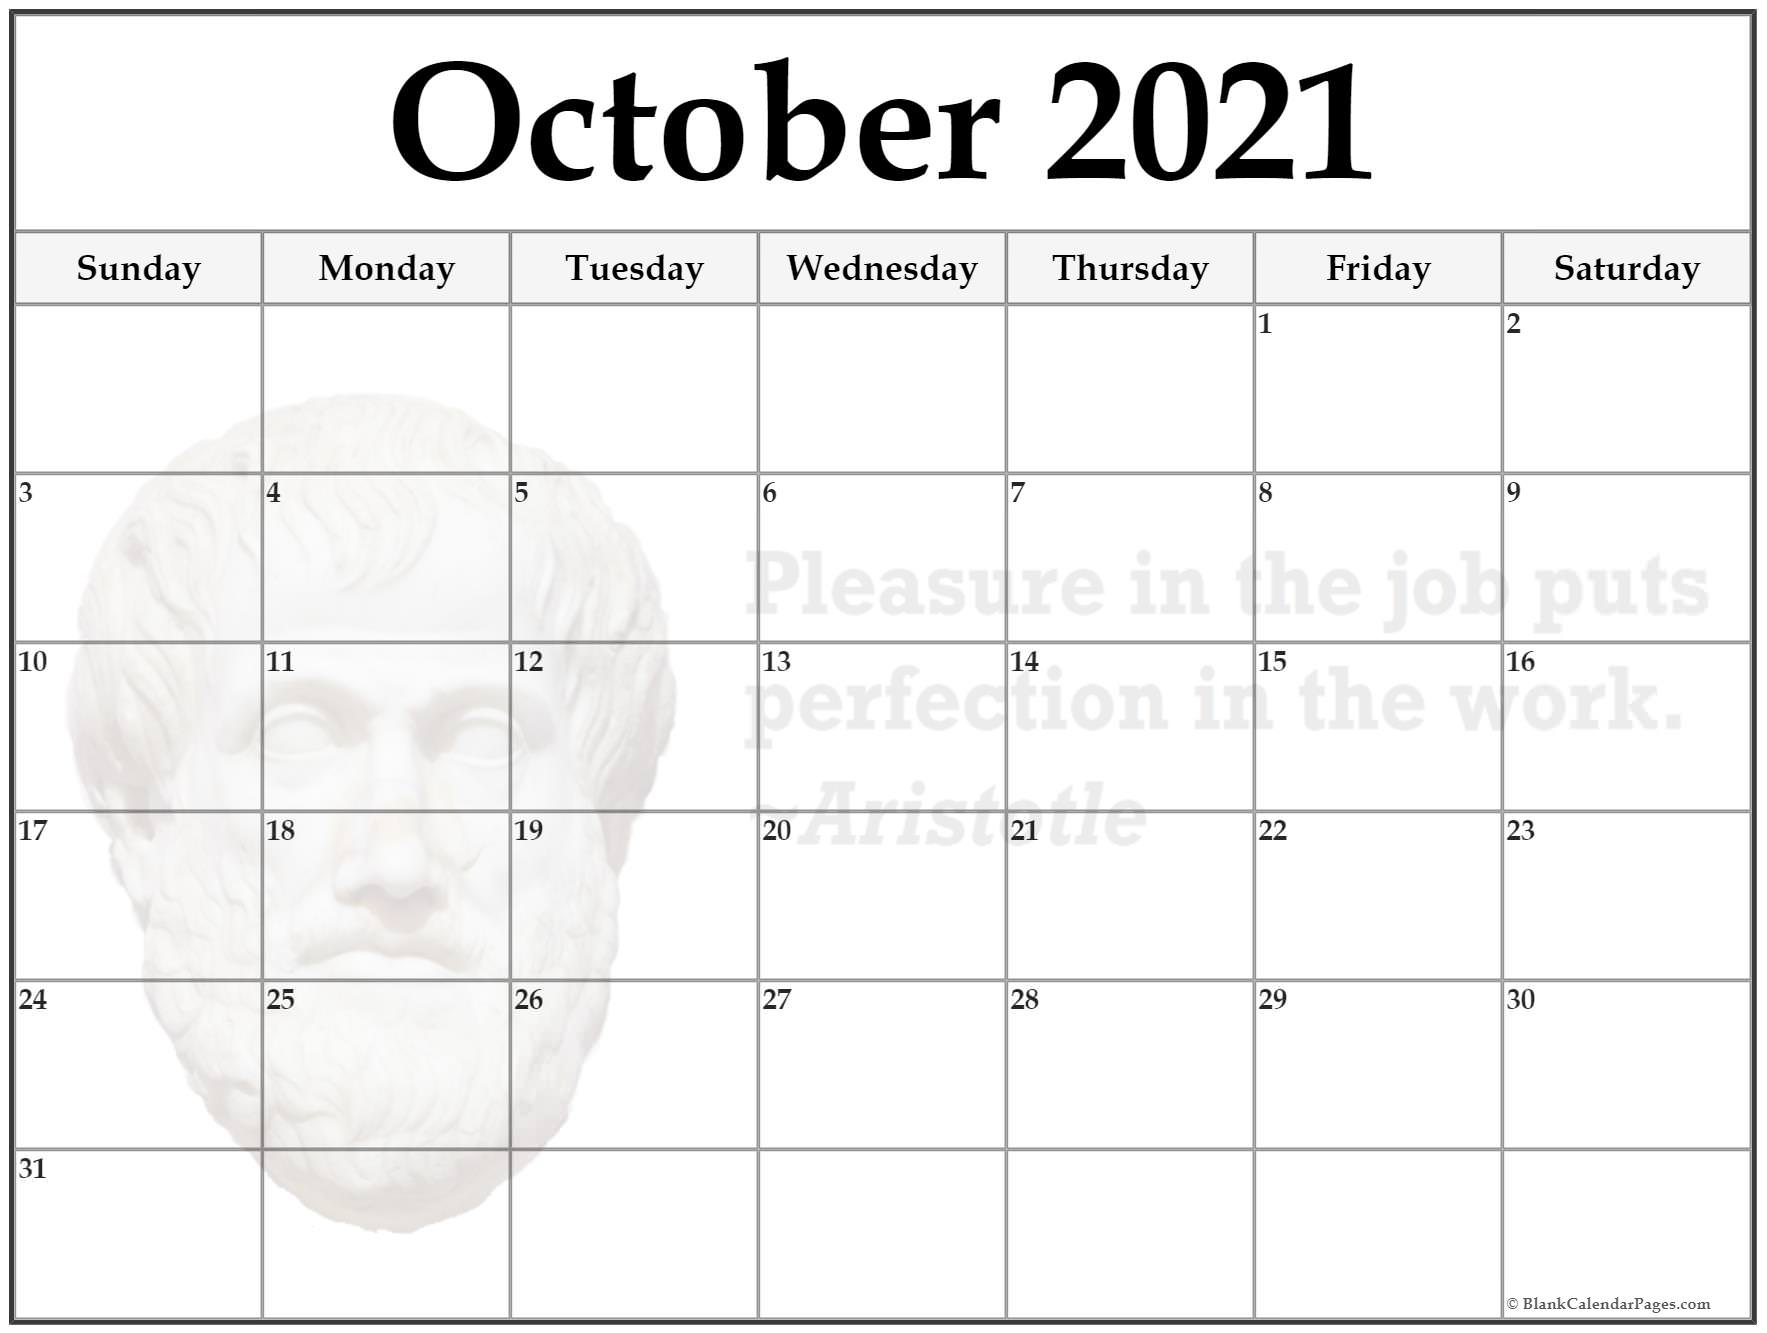 October calendar Pleasure in the job, puts perfection in the work ~Aristotle